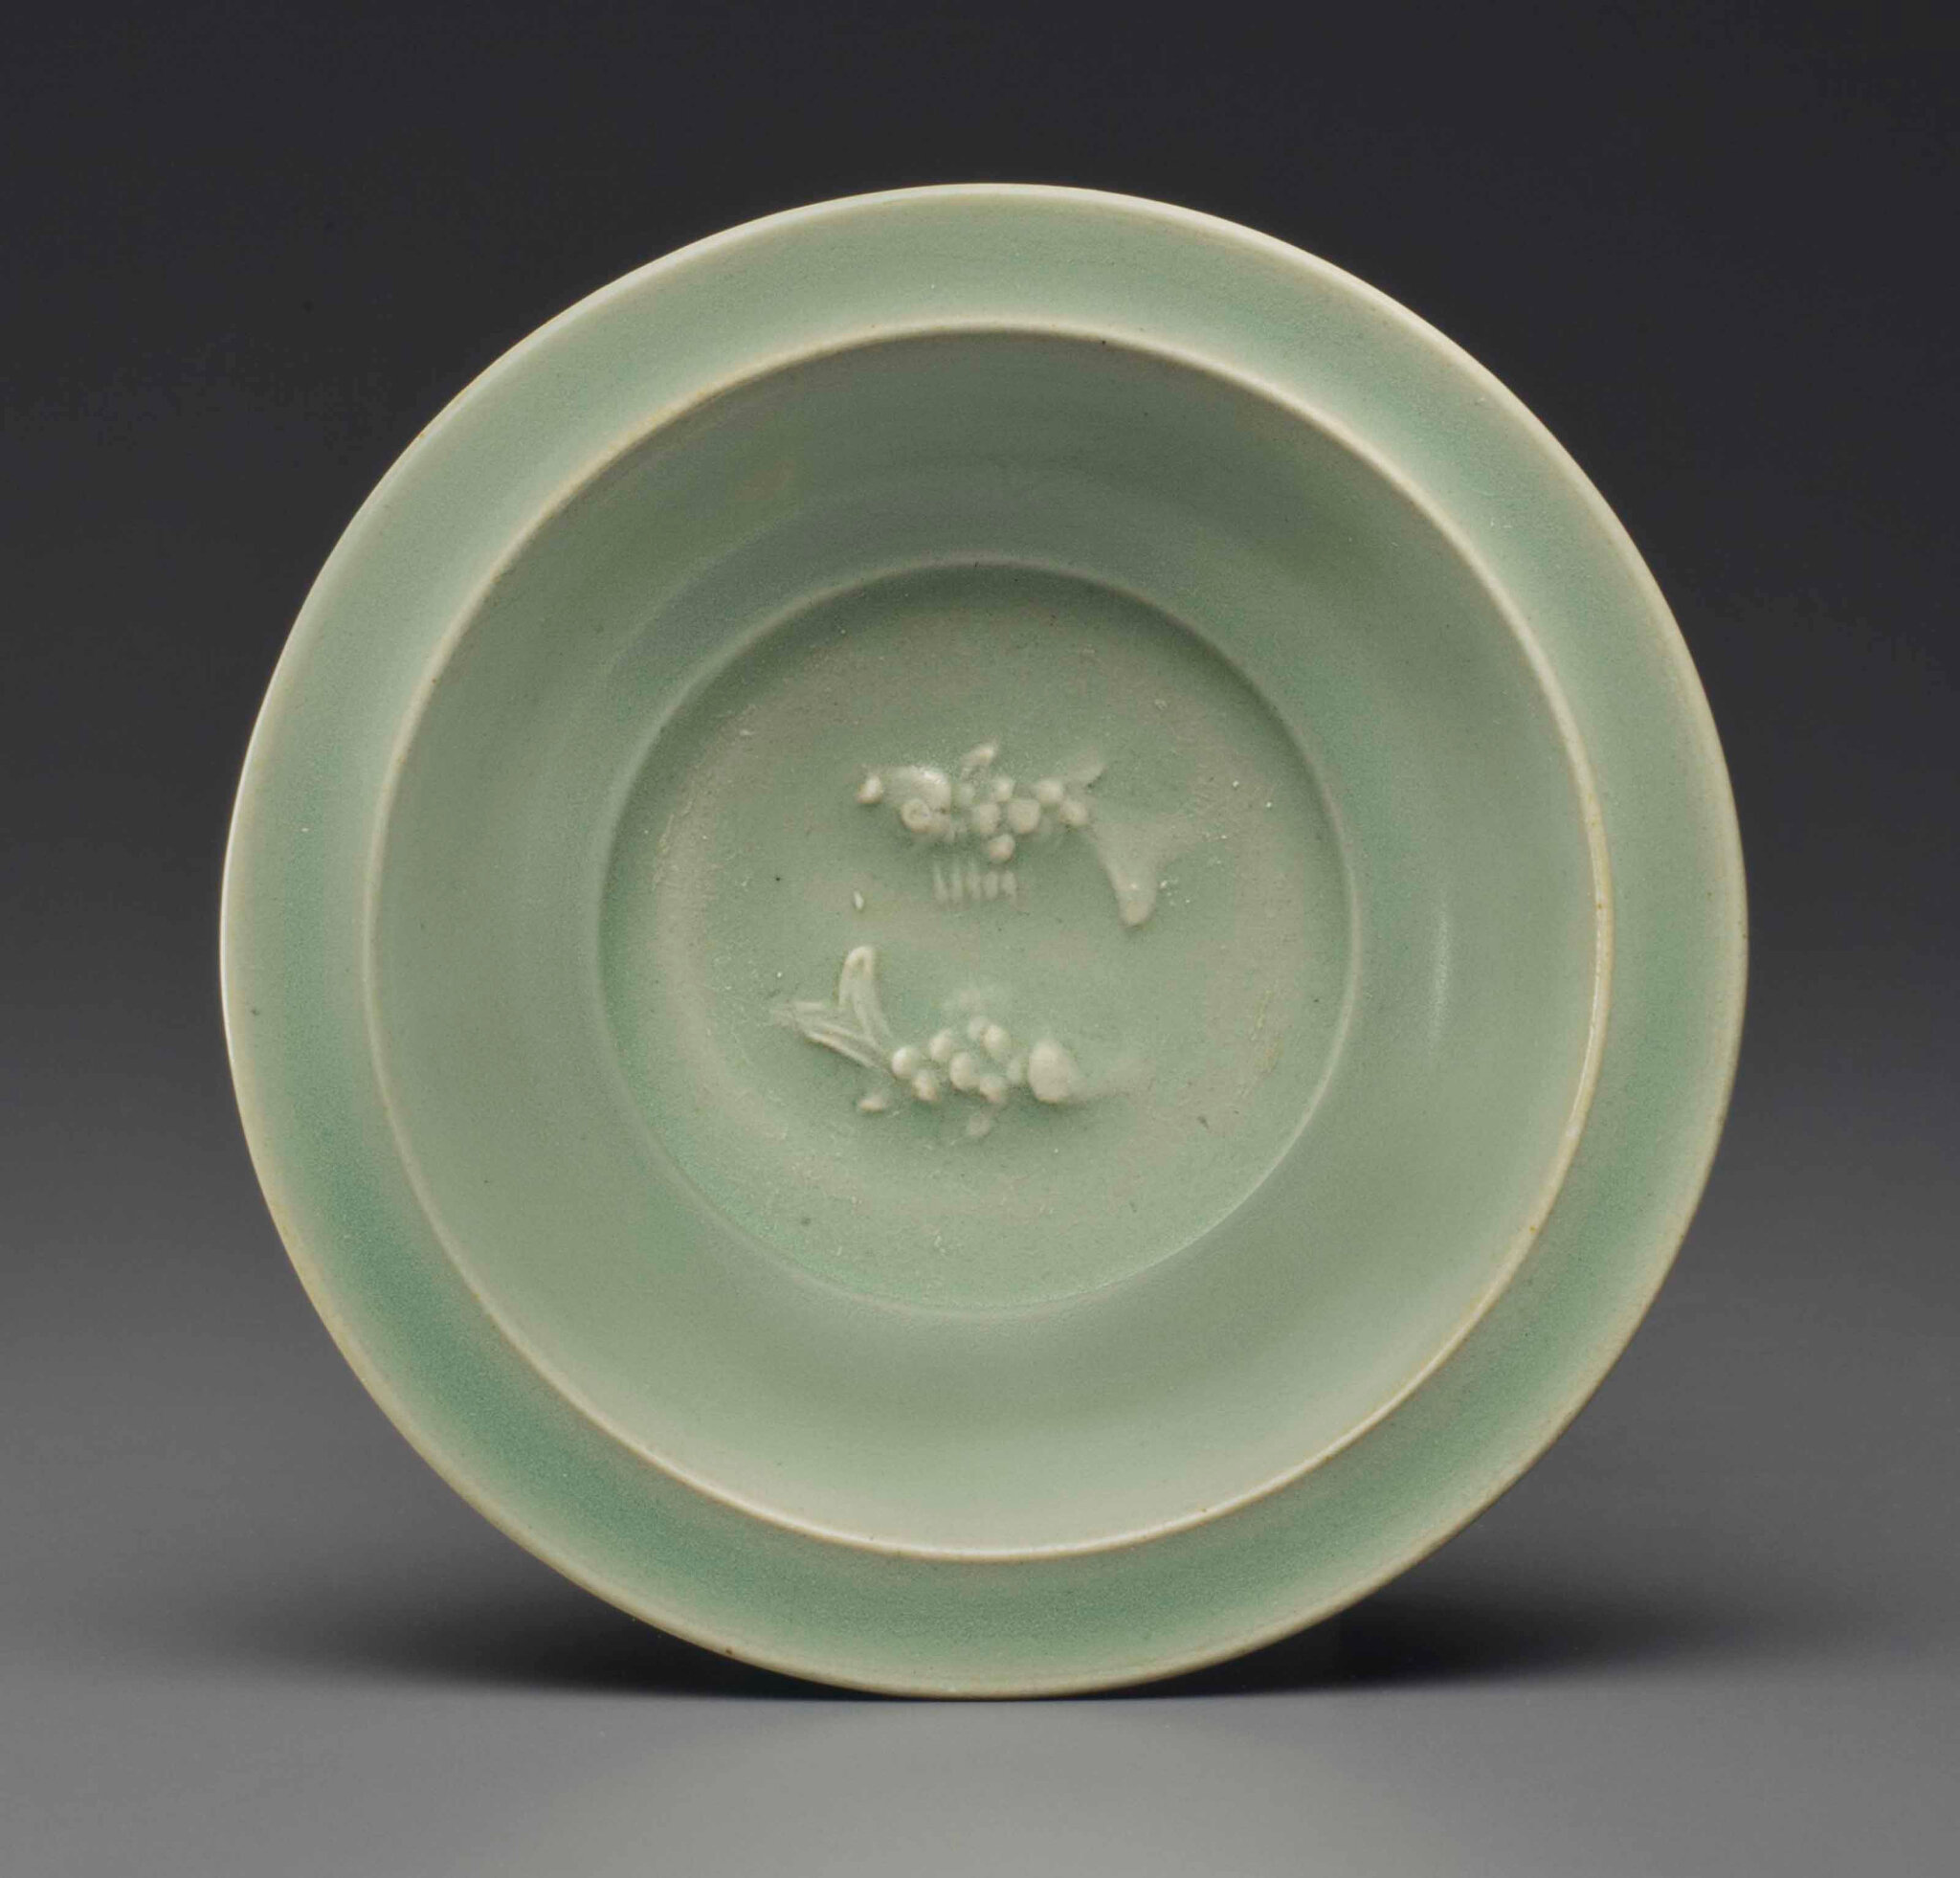 A small Longquan celadon 'twin fish' dish, late Southern Song-Yuan dynasty, 13th-14th century